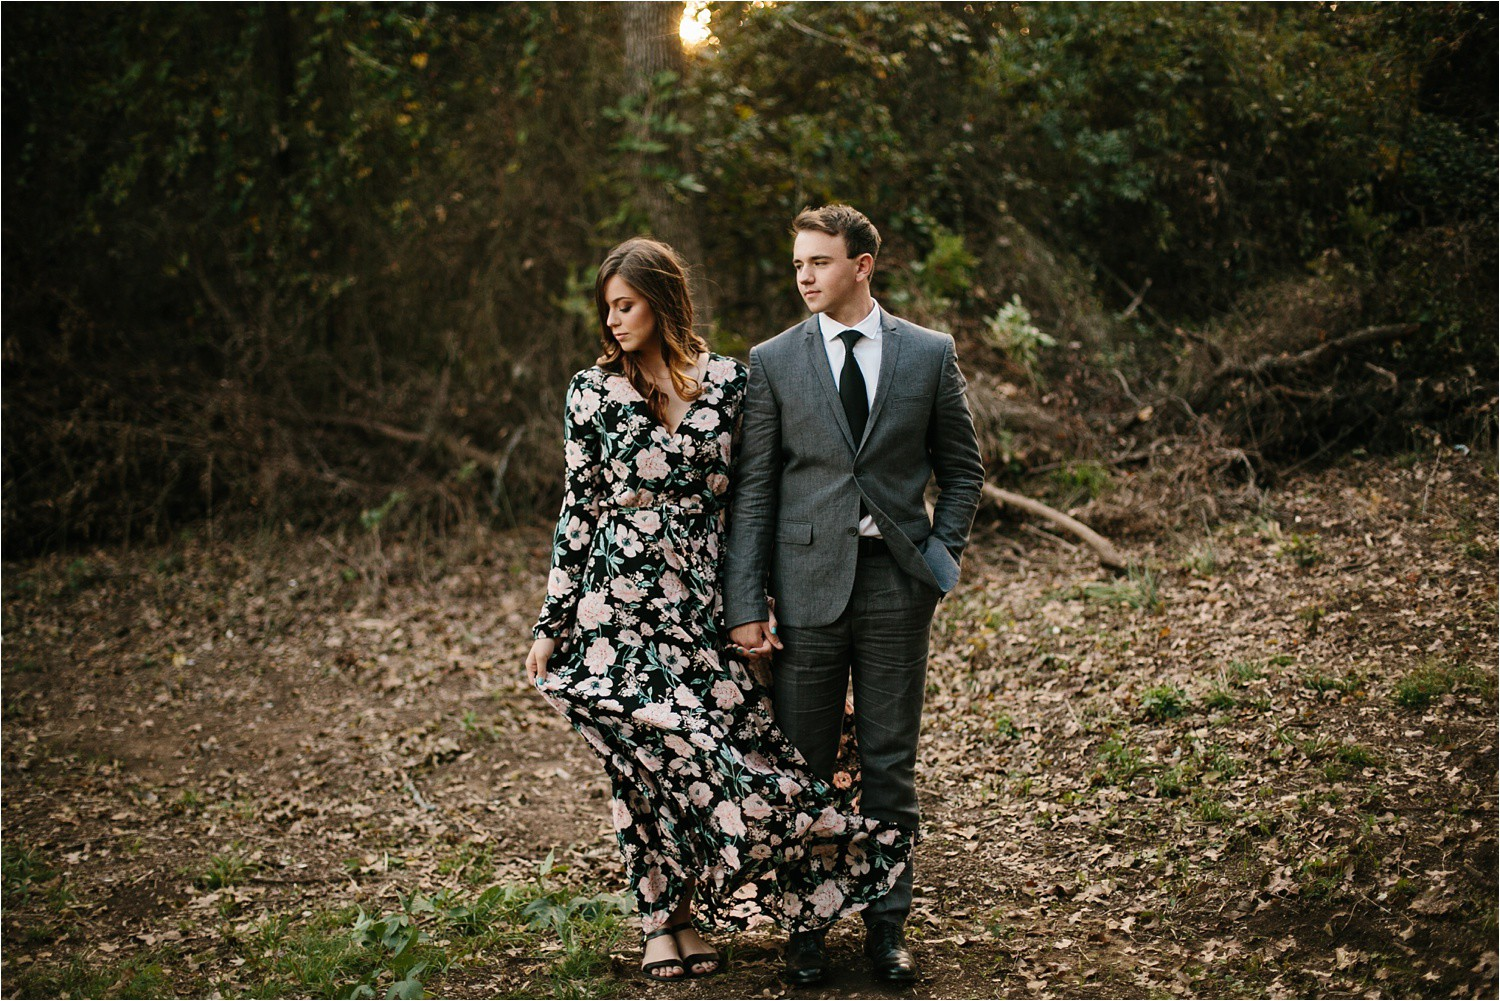 Aleta + Sabian __ a windy lakeside nature engagement session by North Texas Wedding Photographer Rachel Meagan Photography _24